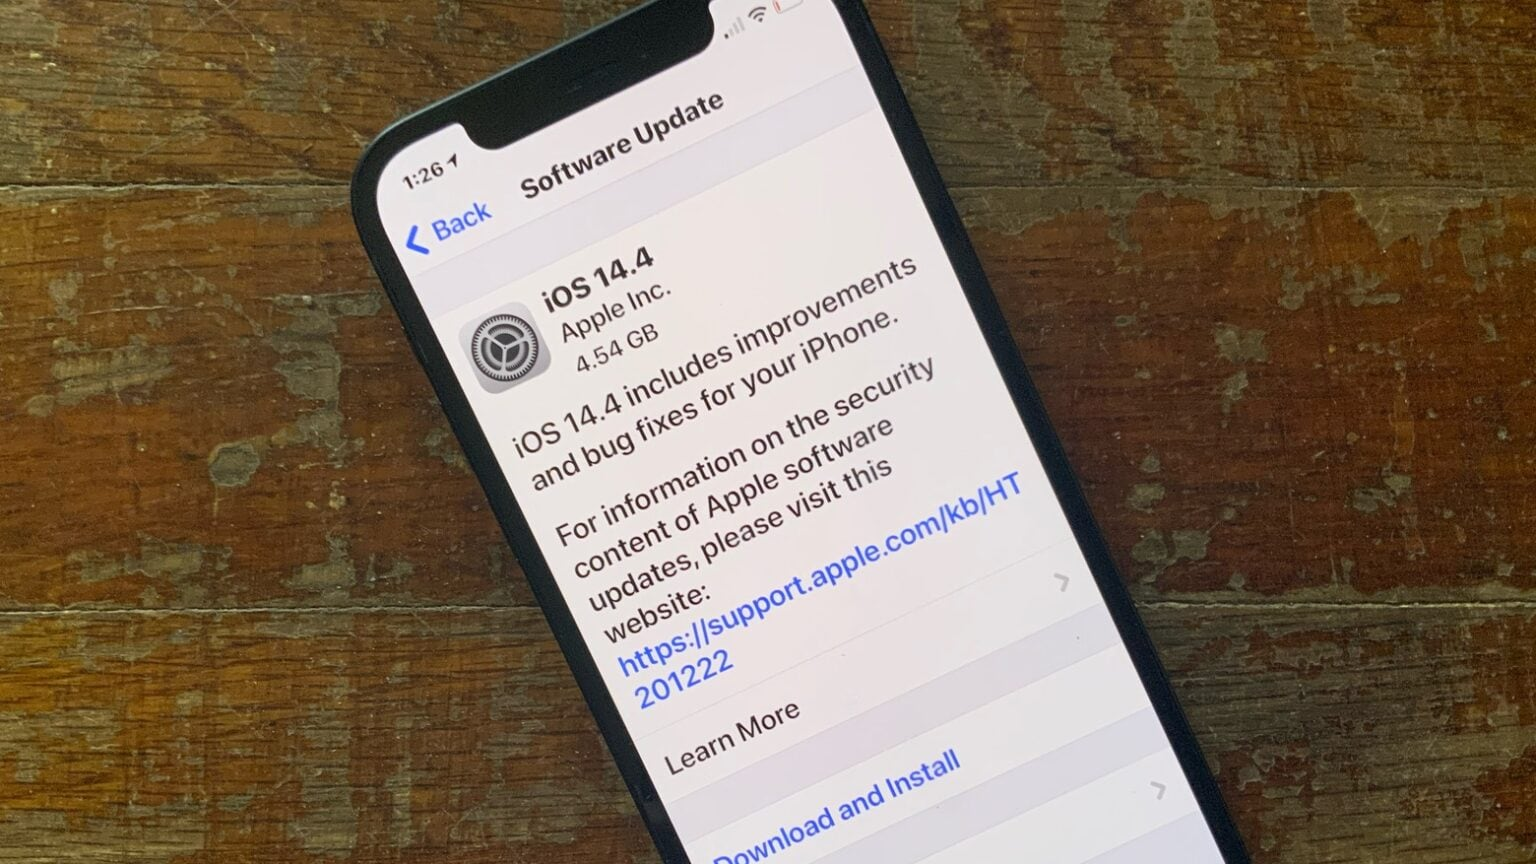 iOS 14.4 debuted to the general public on Tuesday.